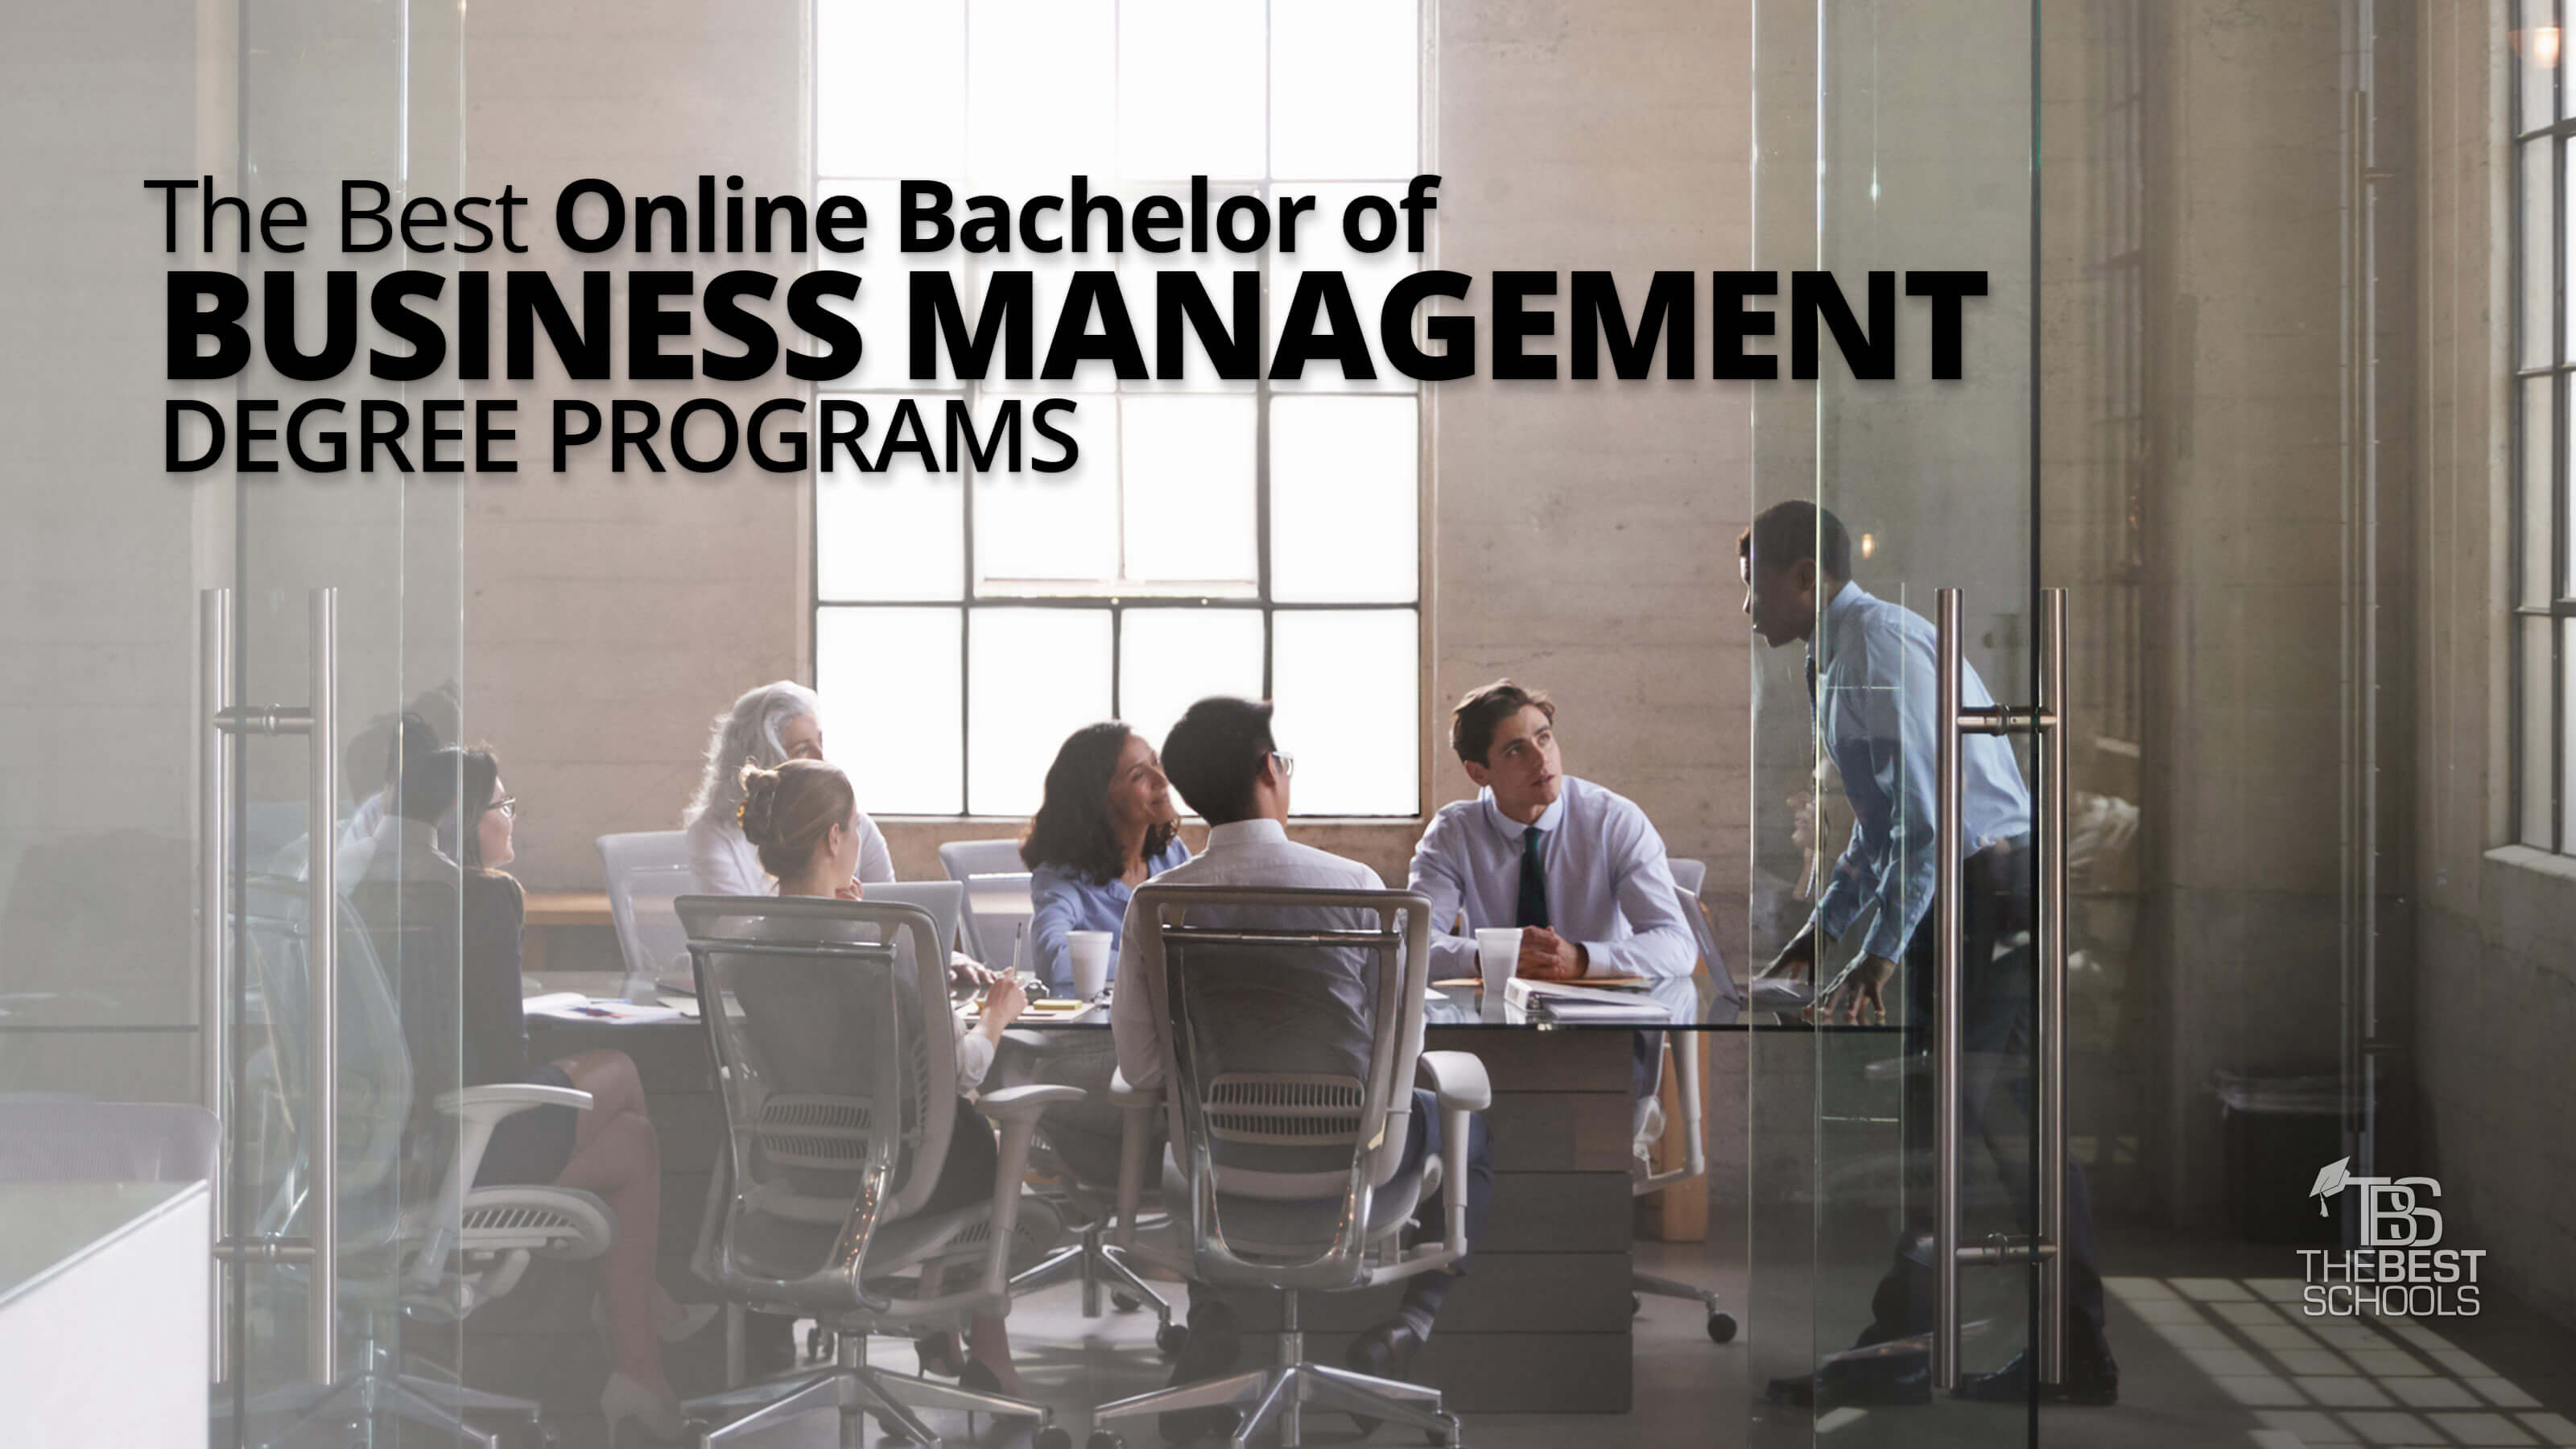 Online Business Schools >> The Best Online Bachelor In Business Management Degree Programs